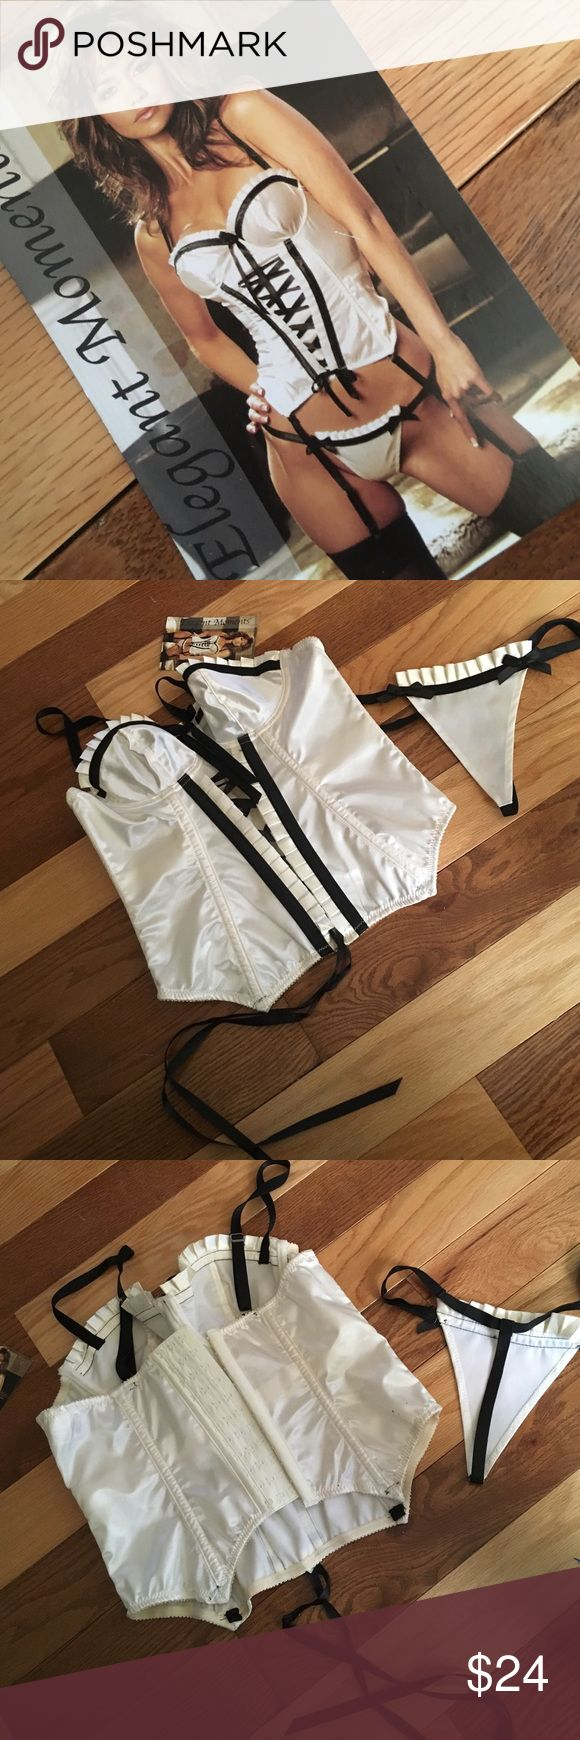 Cream and Black Corset w bottoms Corset has three rows of hooks at the back and the front has adjustable ribbon. Bottoms are as pictured. Garter straps included.           Sz 32 (S)chest 28-30.                                          Sz 36 (L)chest 34-36.                                          Sz 38 (XL)chest 36-38.     Bundle to save. Elegant Moments Intimates & Sleepwear